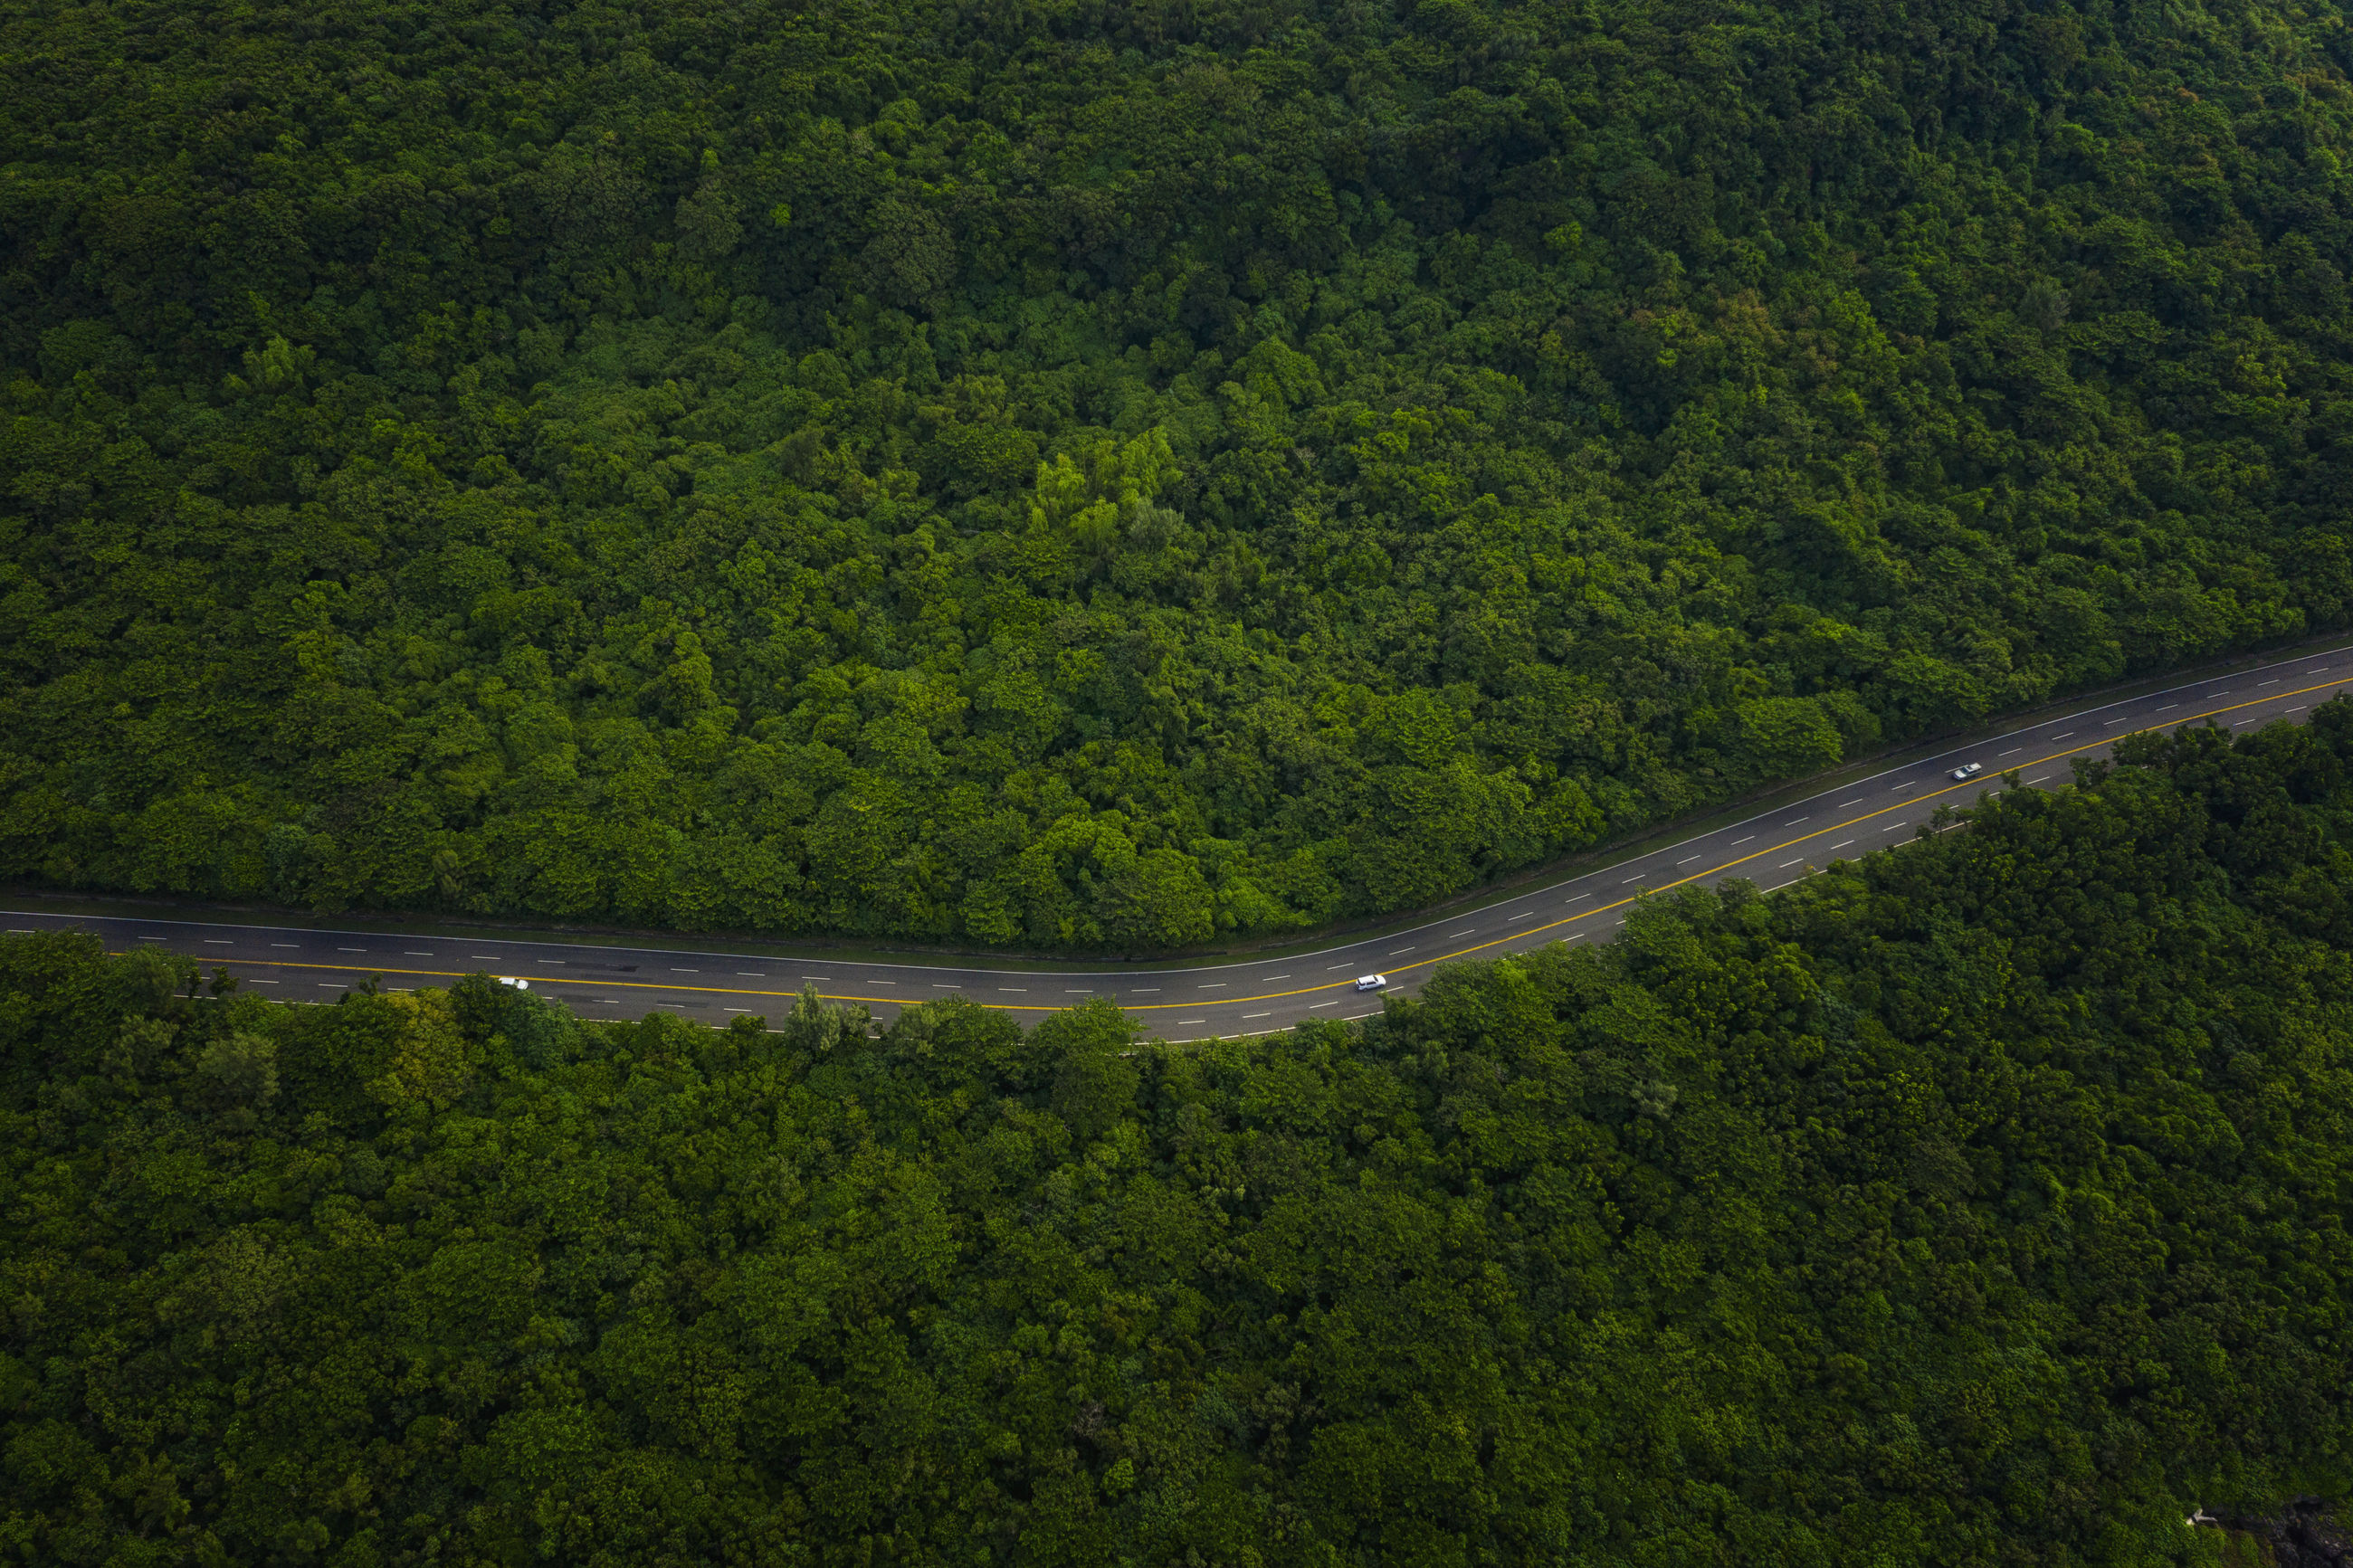 SCENIC VIEW OF ROAD AMIDST TREES